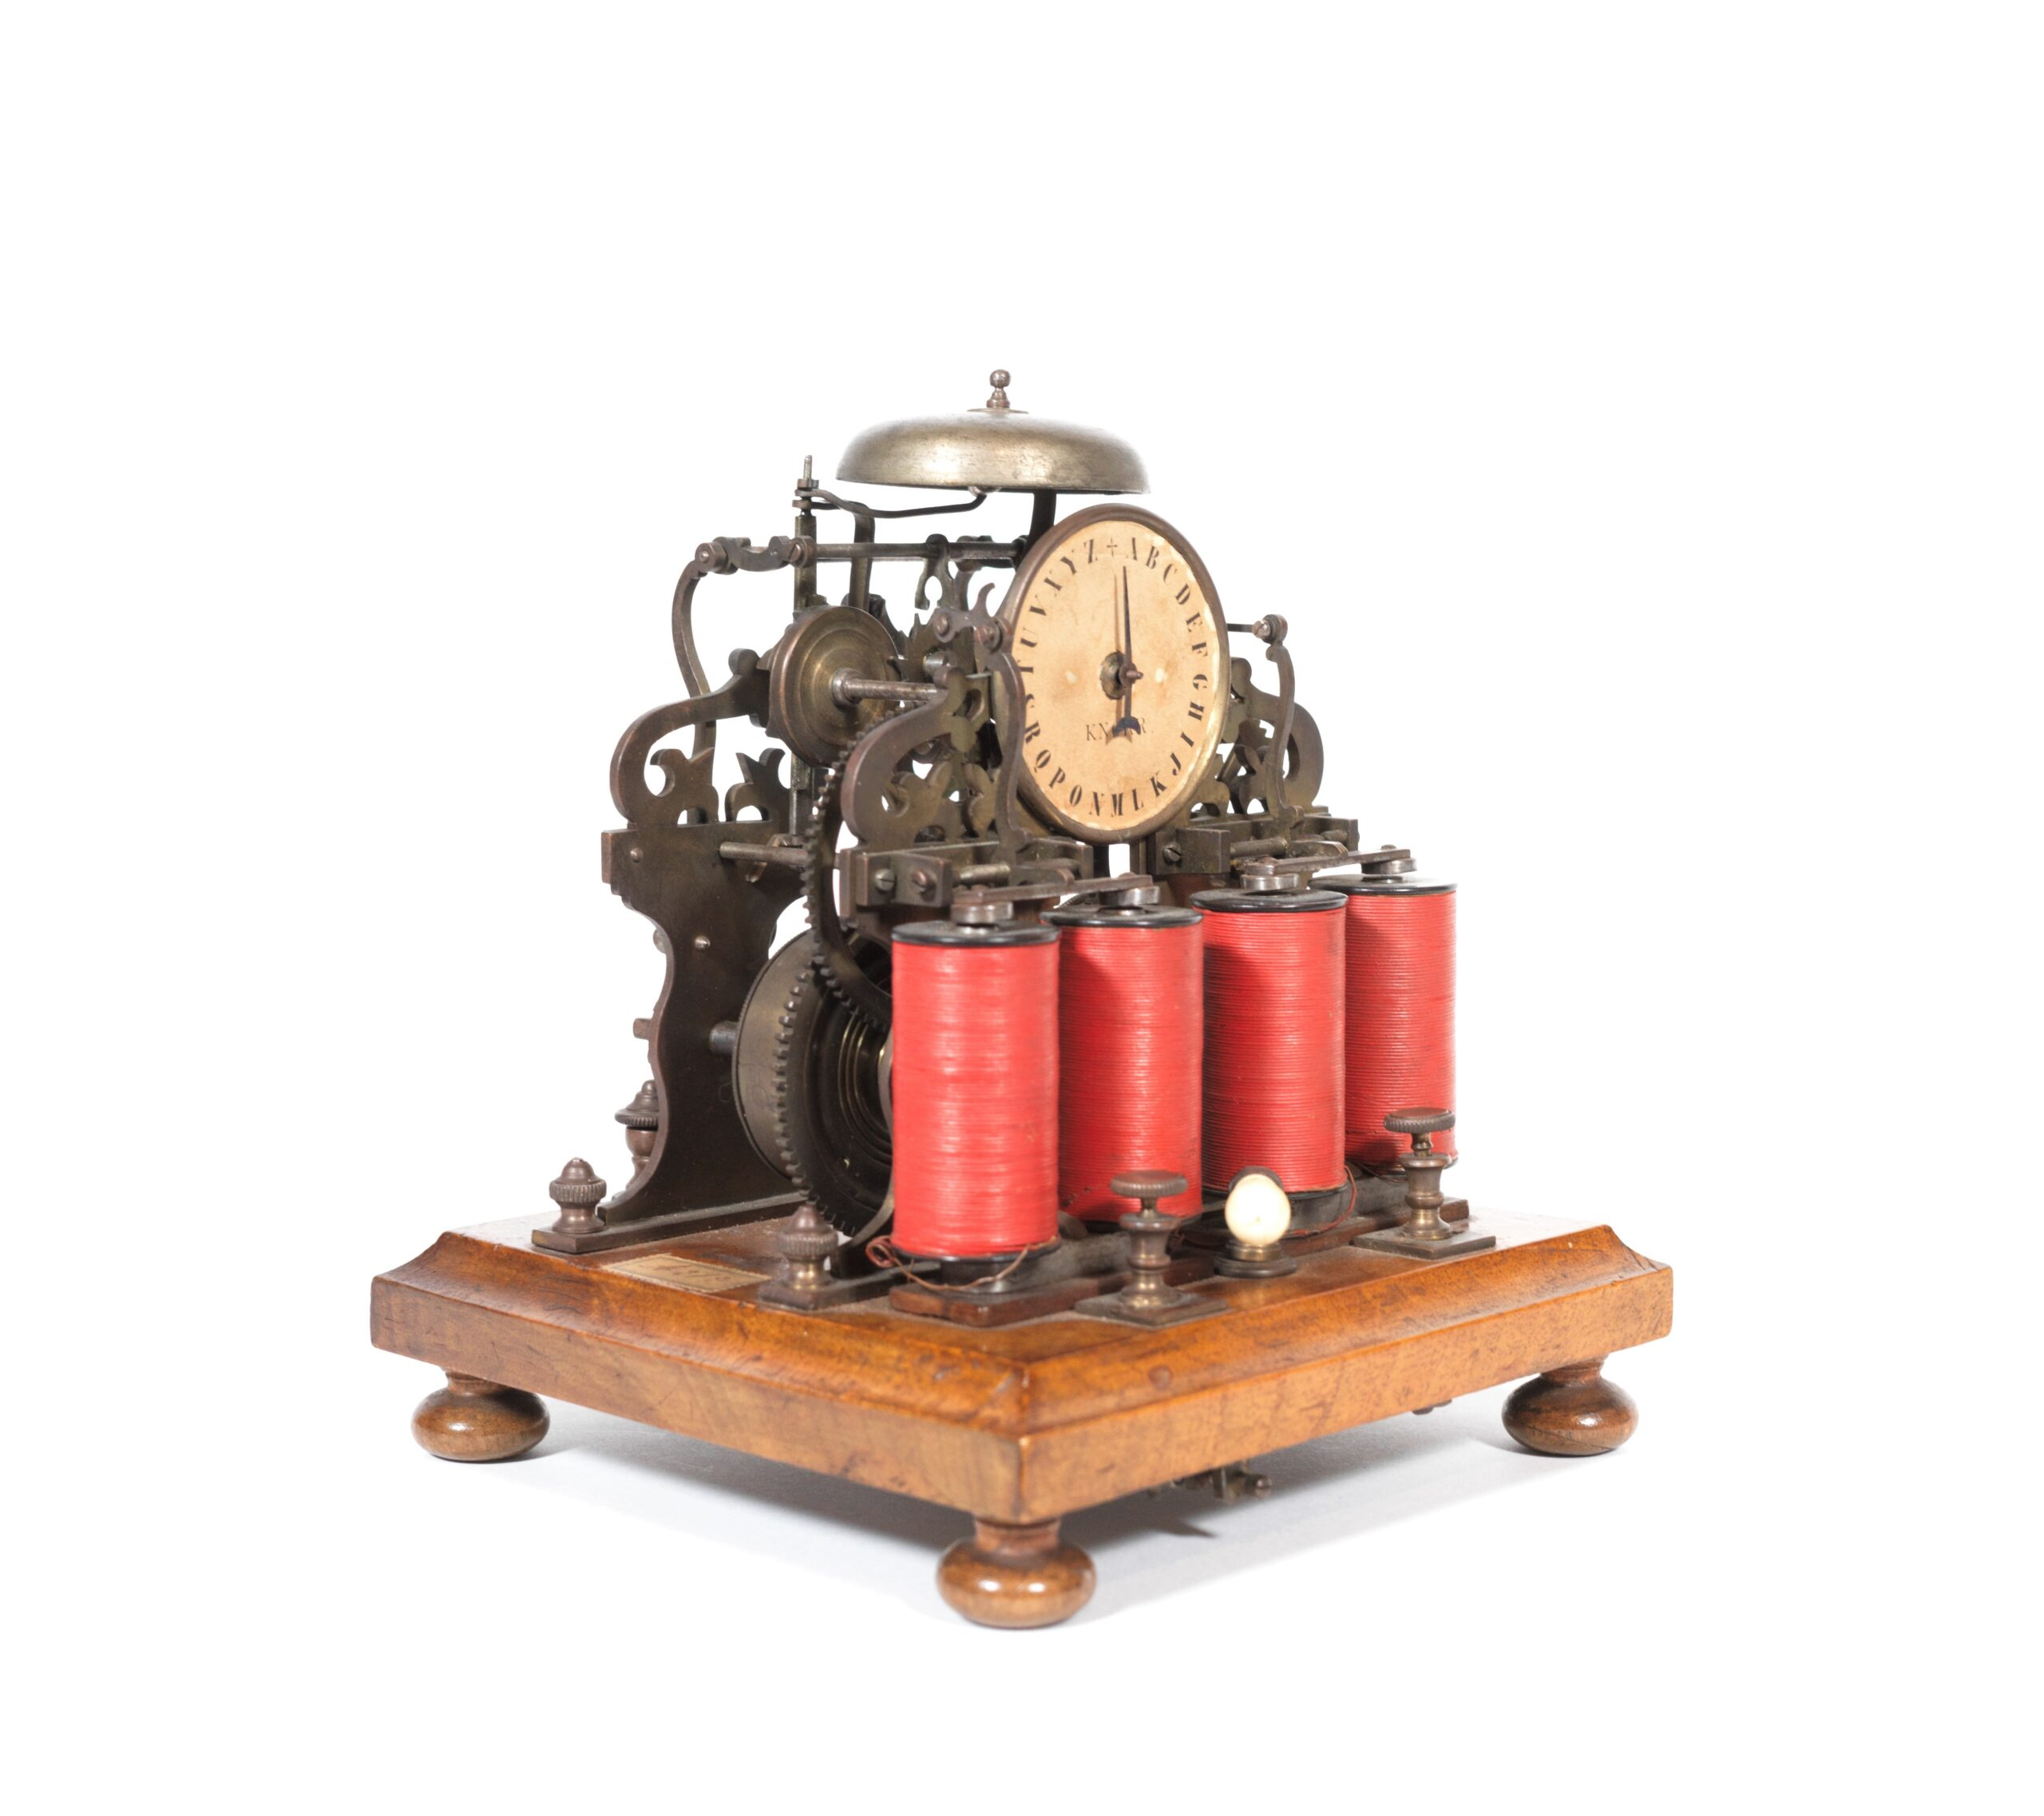 1850 ABC Telegraph With Elaborate Clockwork, Bell & Twin Electro-Magnets * Signed Knorr